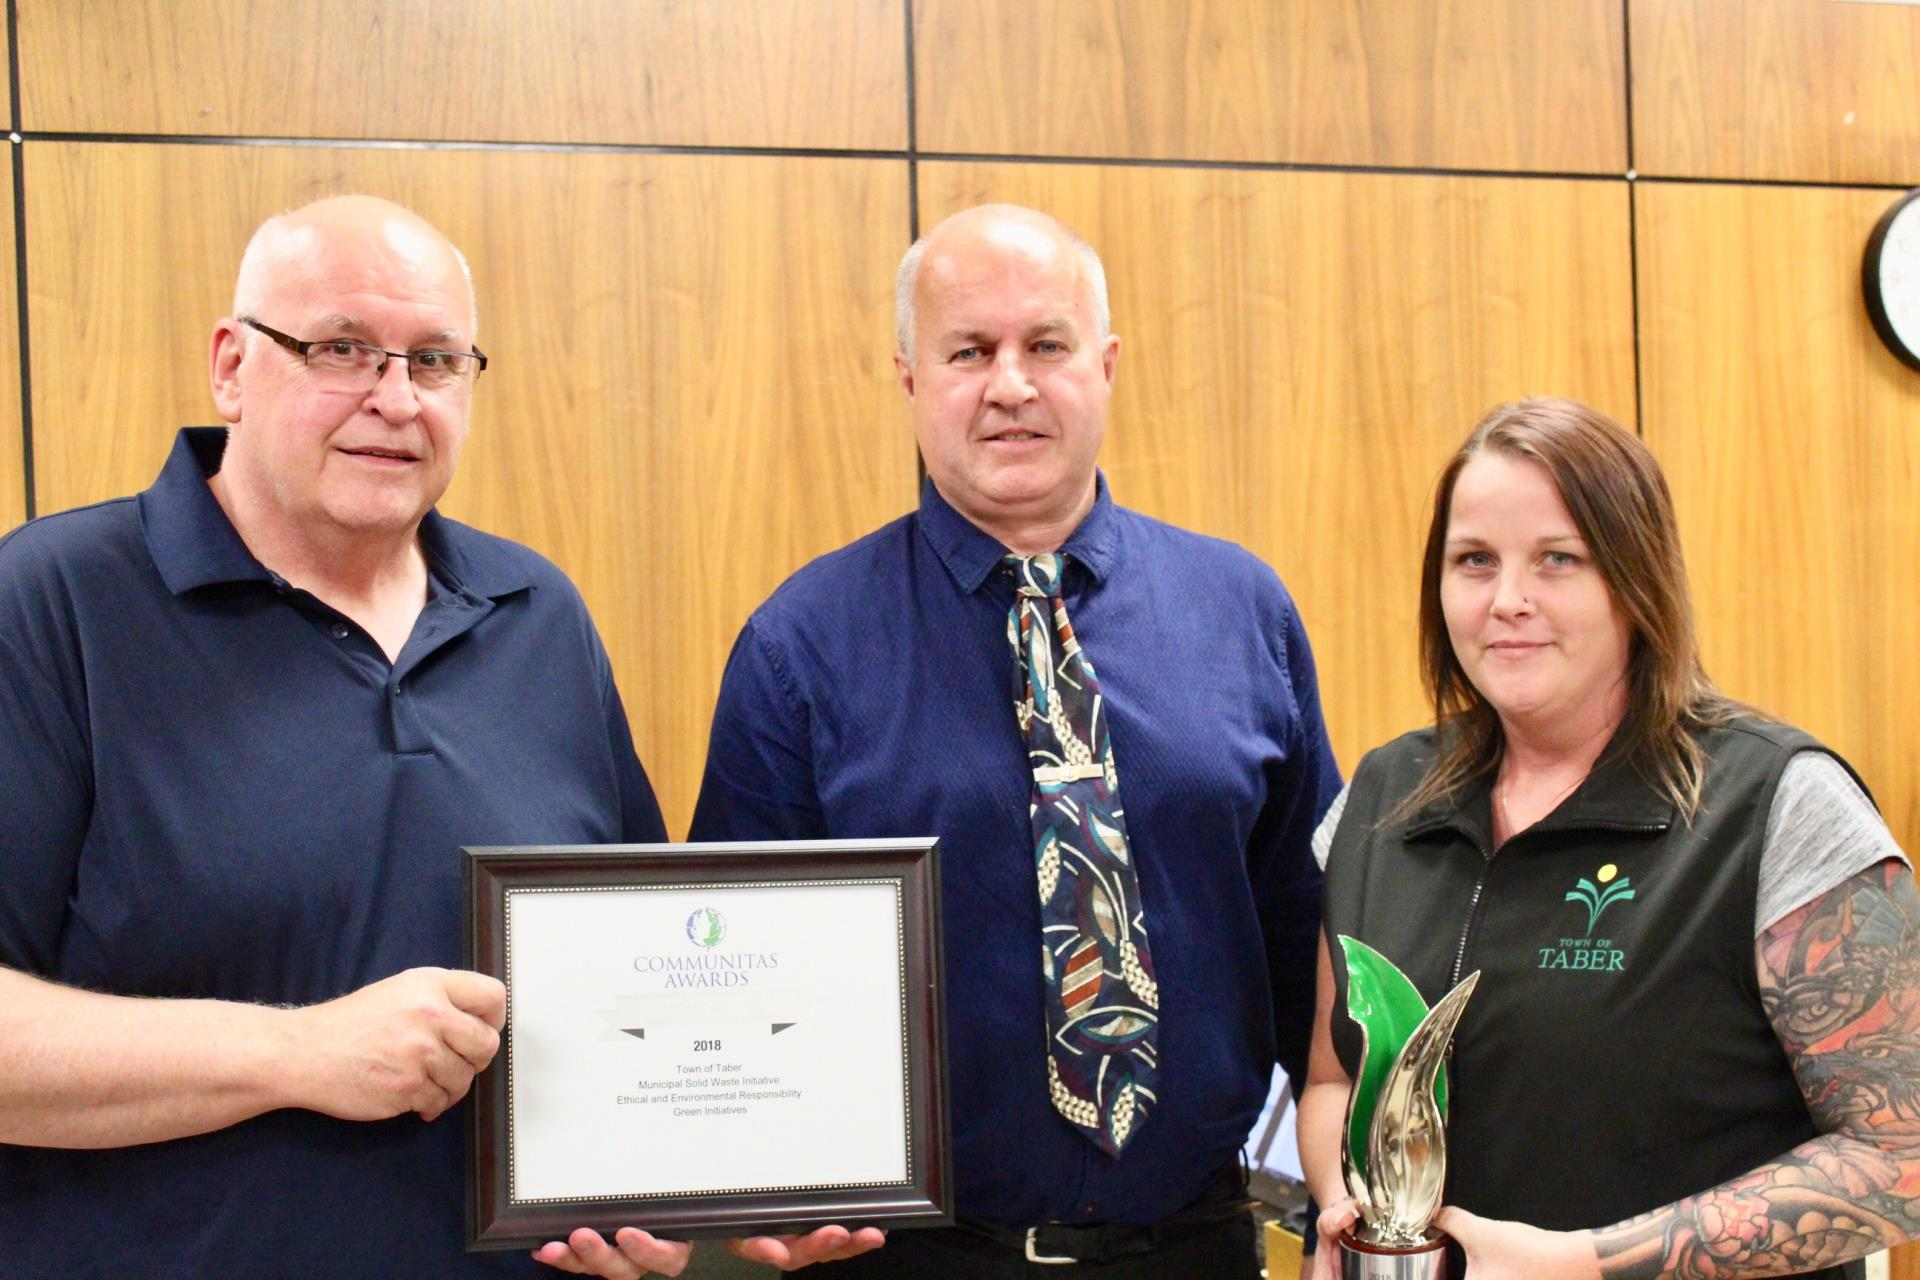 Director of Public Works Gary Scherer and Public Works Administrative Supervisor Lisa DeBona with Mayor Prokop- Communitas Awards